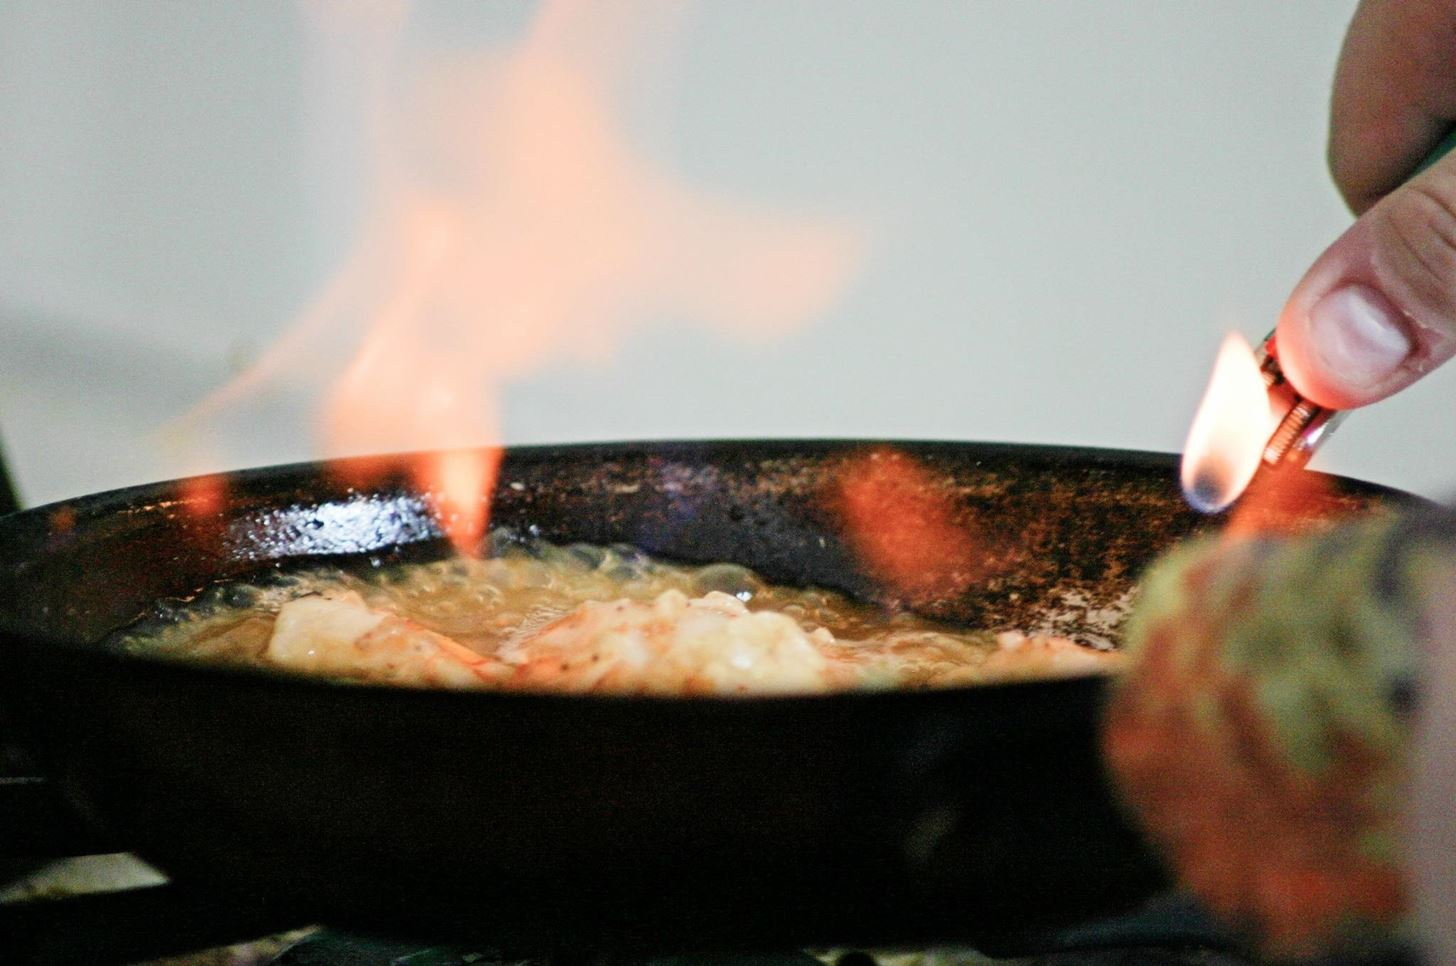 How to Properly Flambé Without Burning Your Food